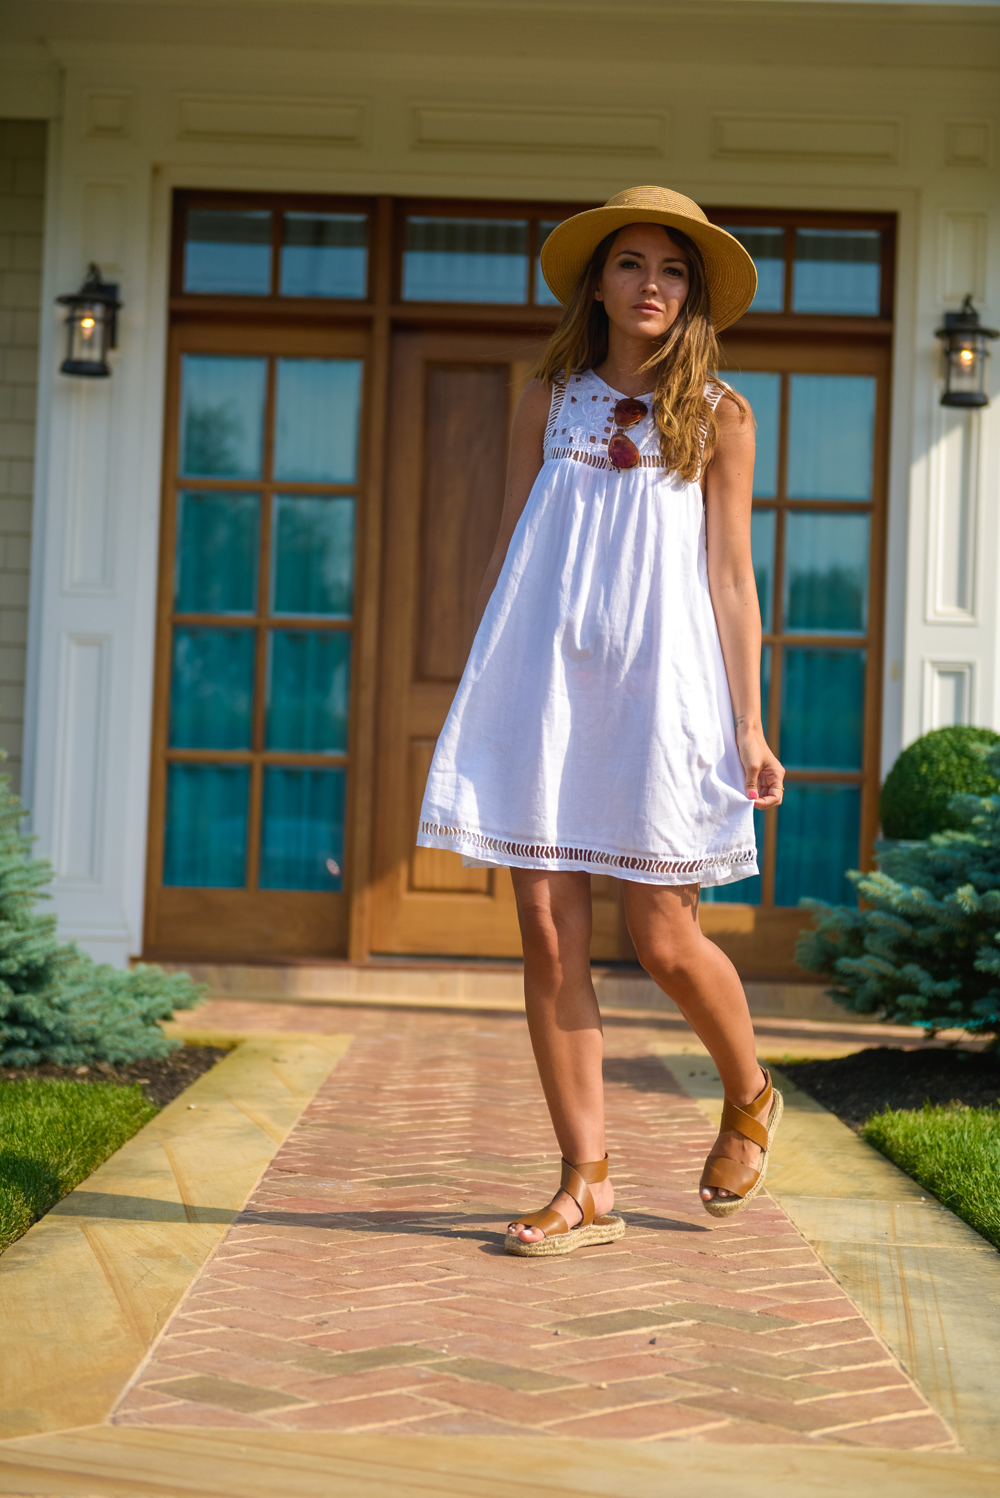 Last two days in the hamptons lovely pepa by alexandra - Lovely pepa by alexandra ...